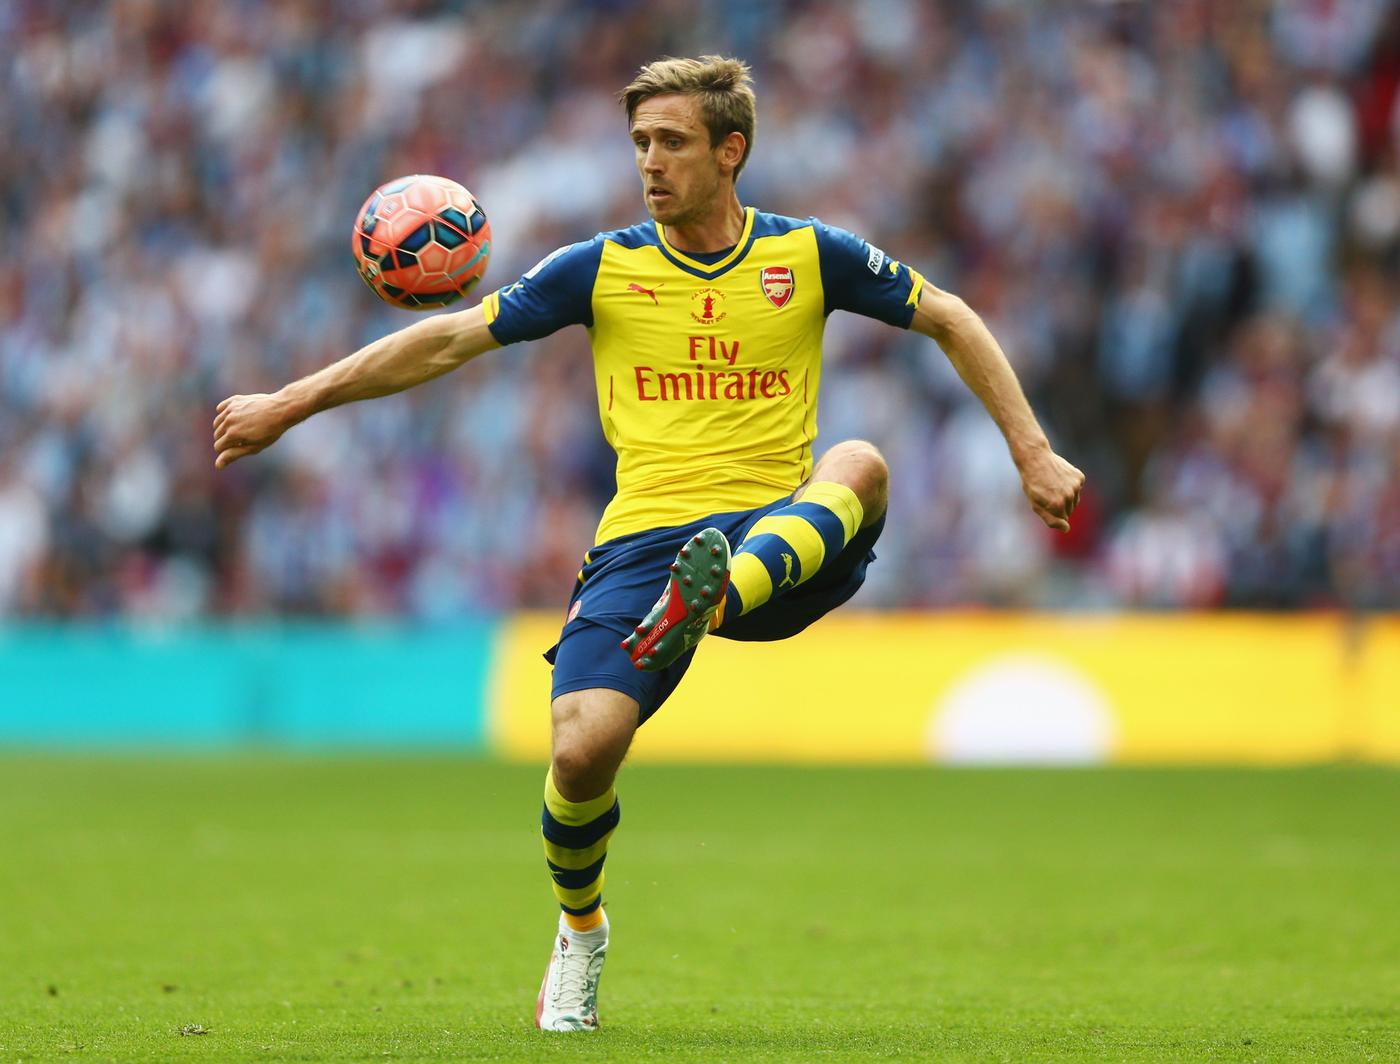 Arsenal's Nacho Monreal was the most accurate passer in the Champions League